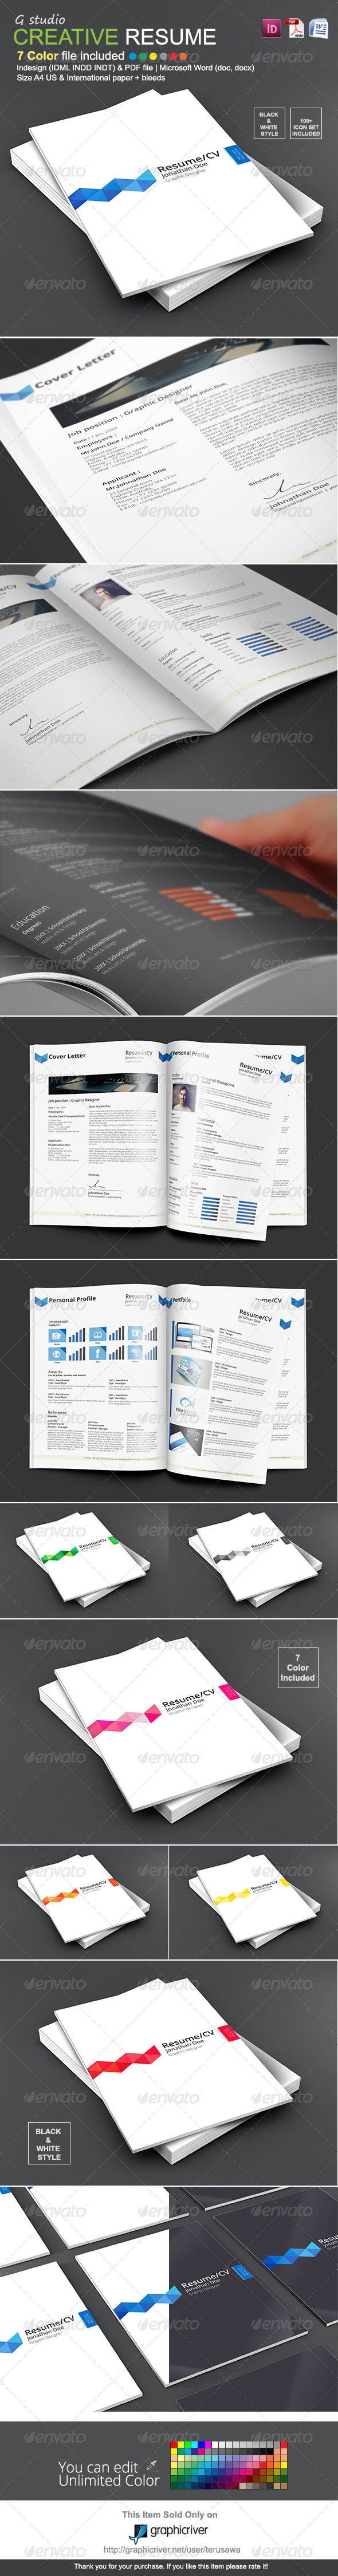 GraphicRiver Gstudio Creative Resume Template 8496192